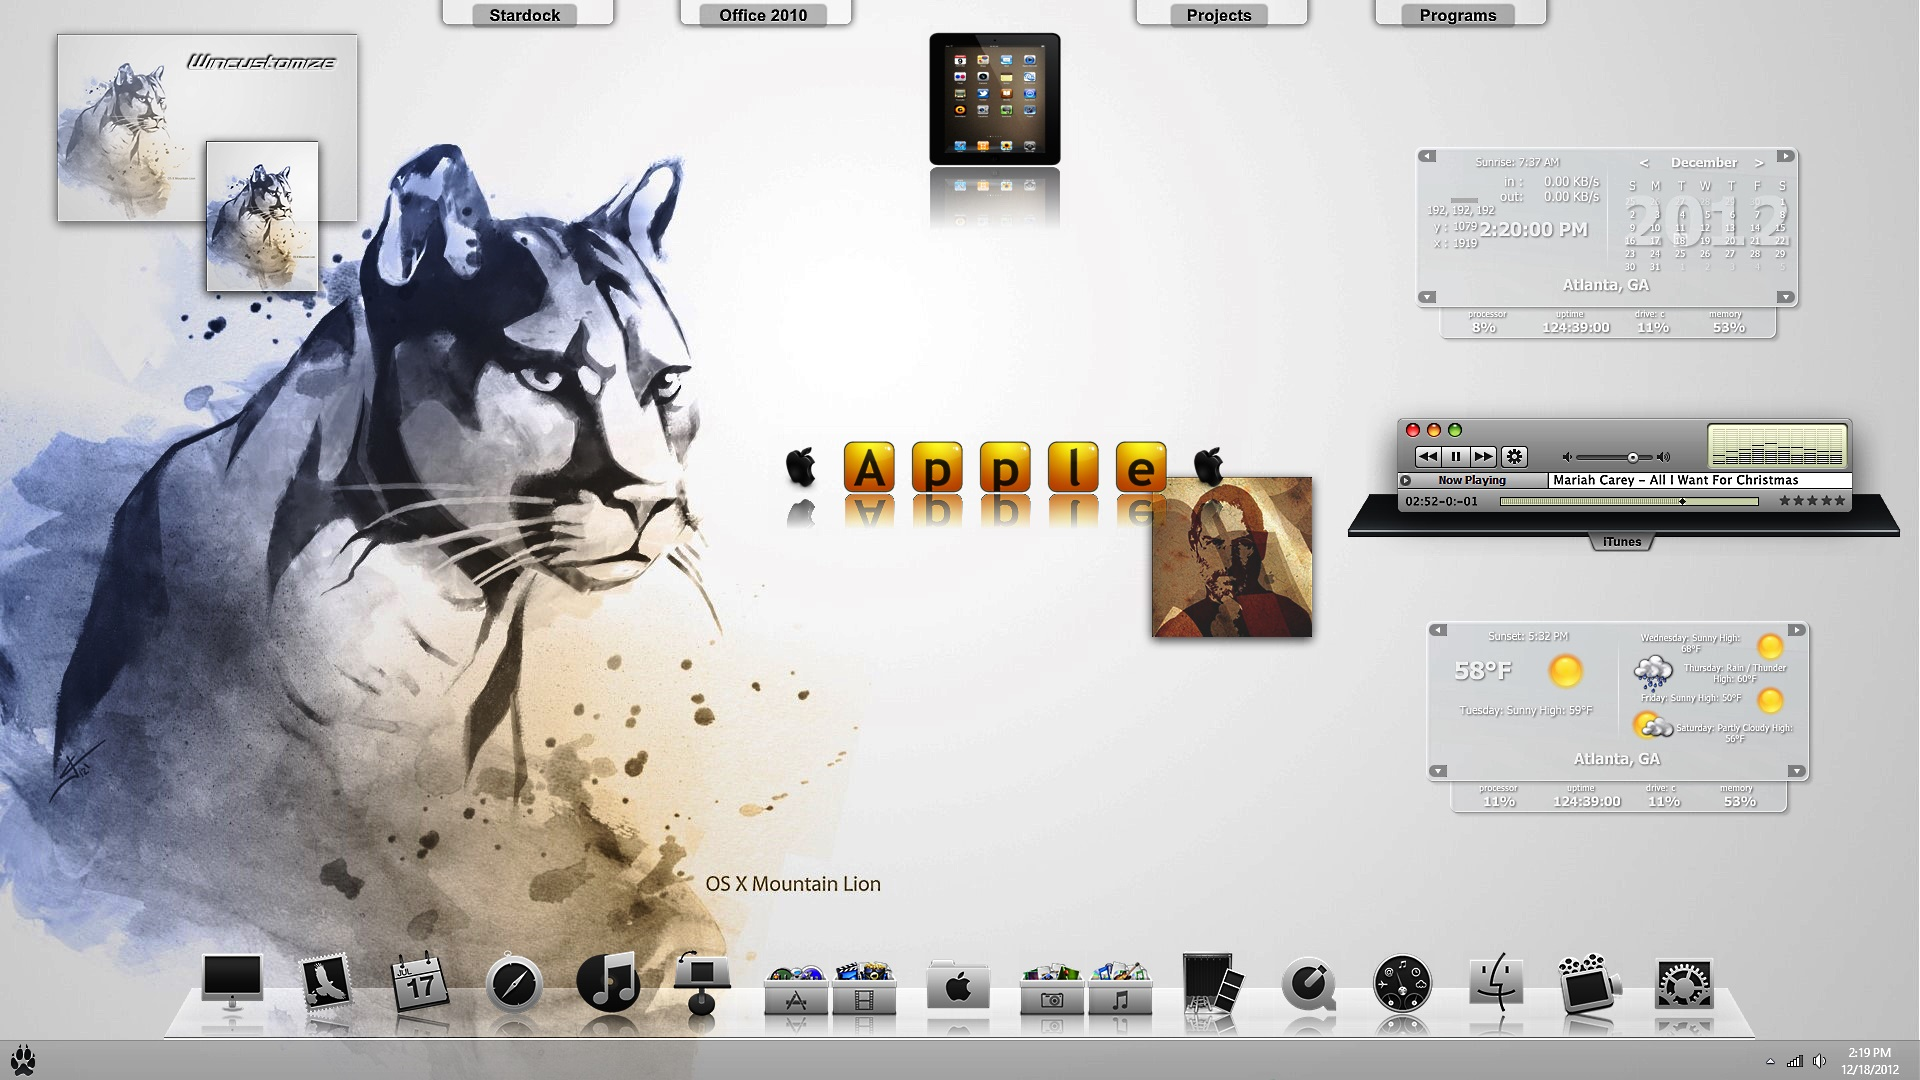 Mac OS X Mtn Lion 5